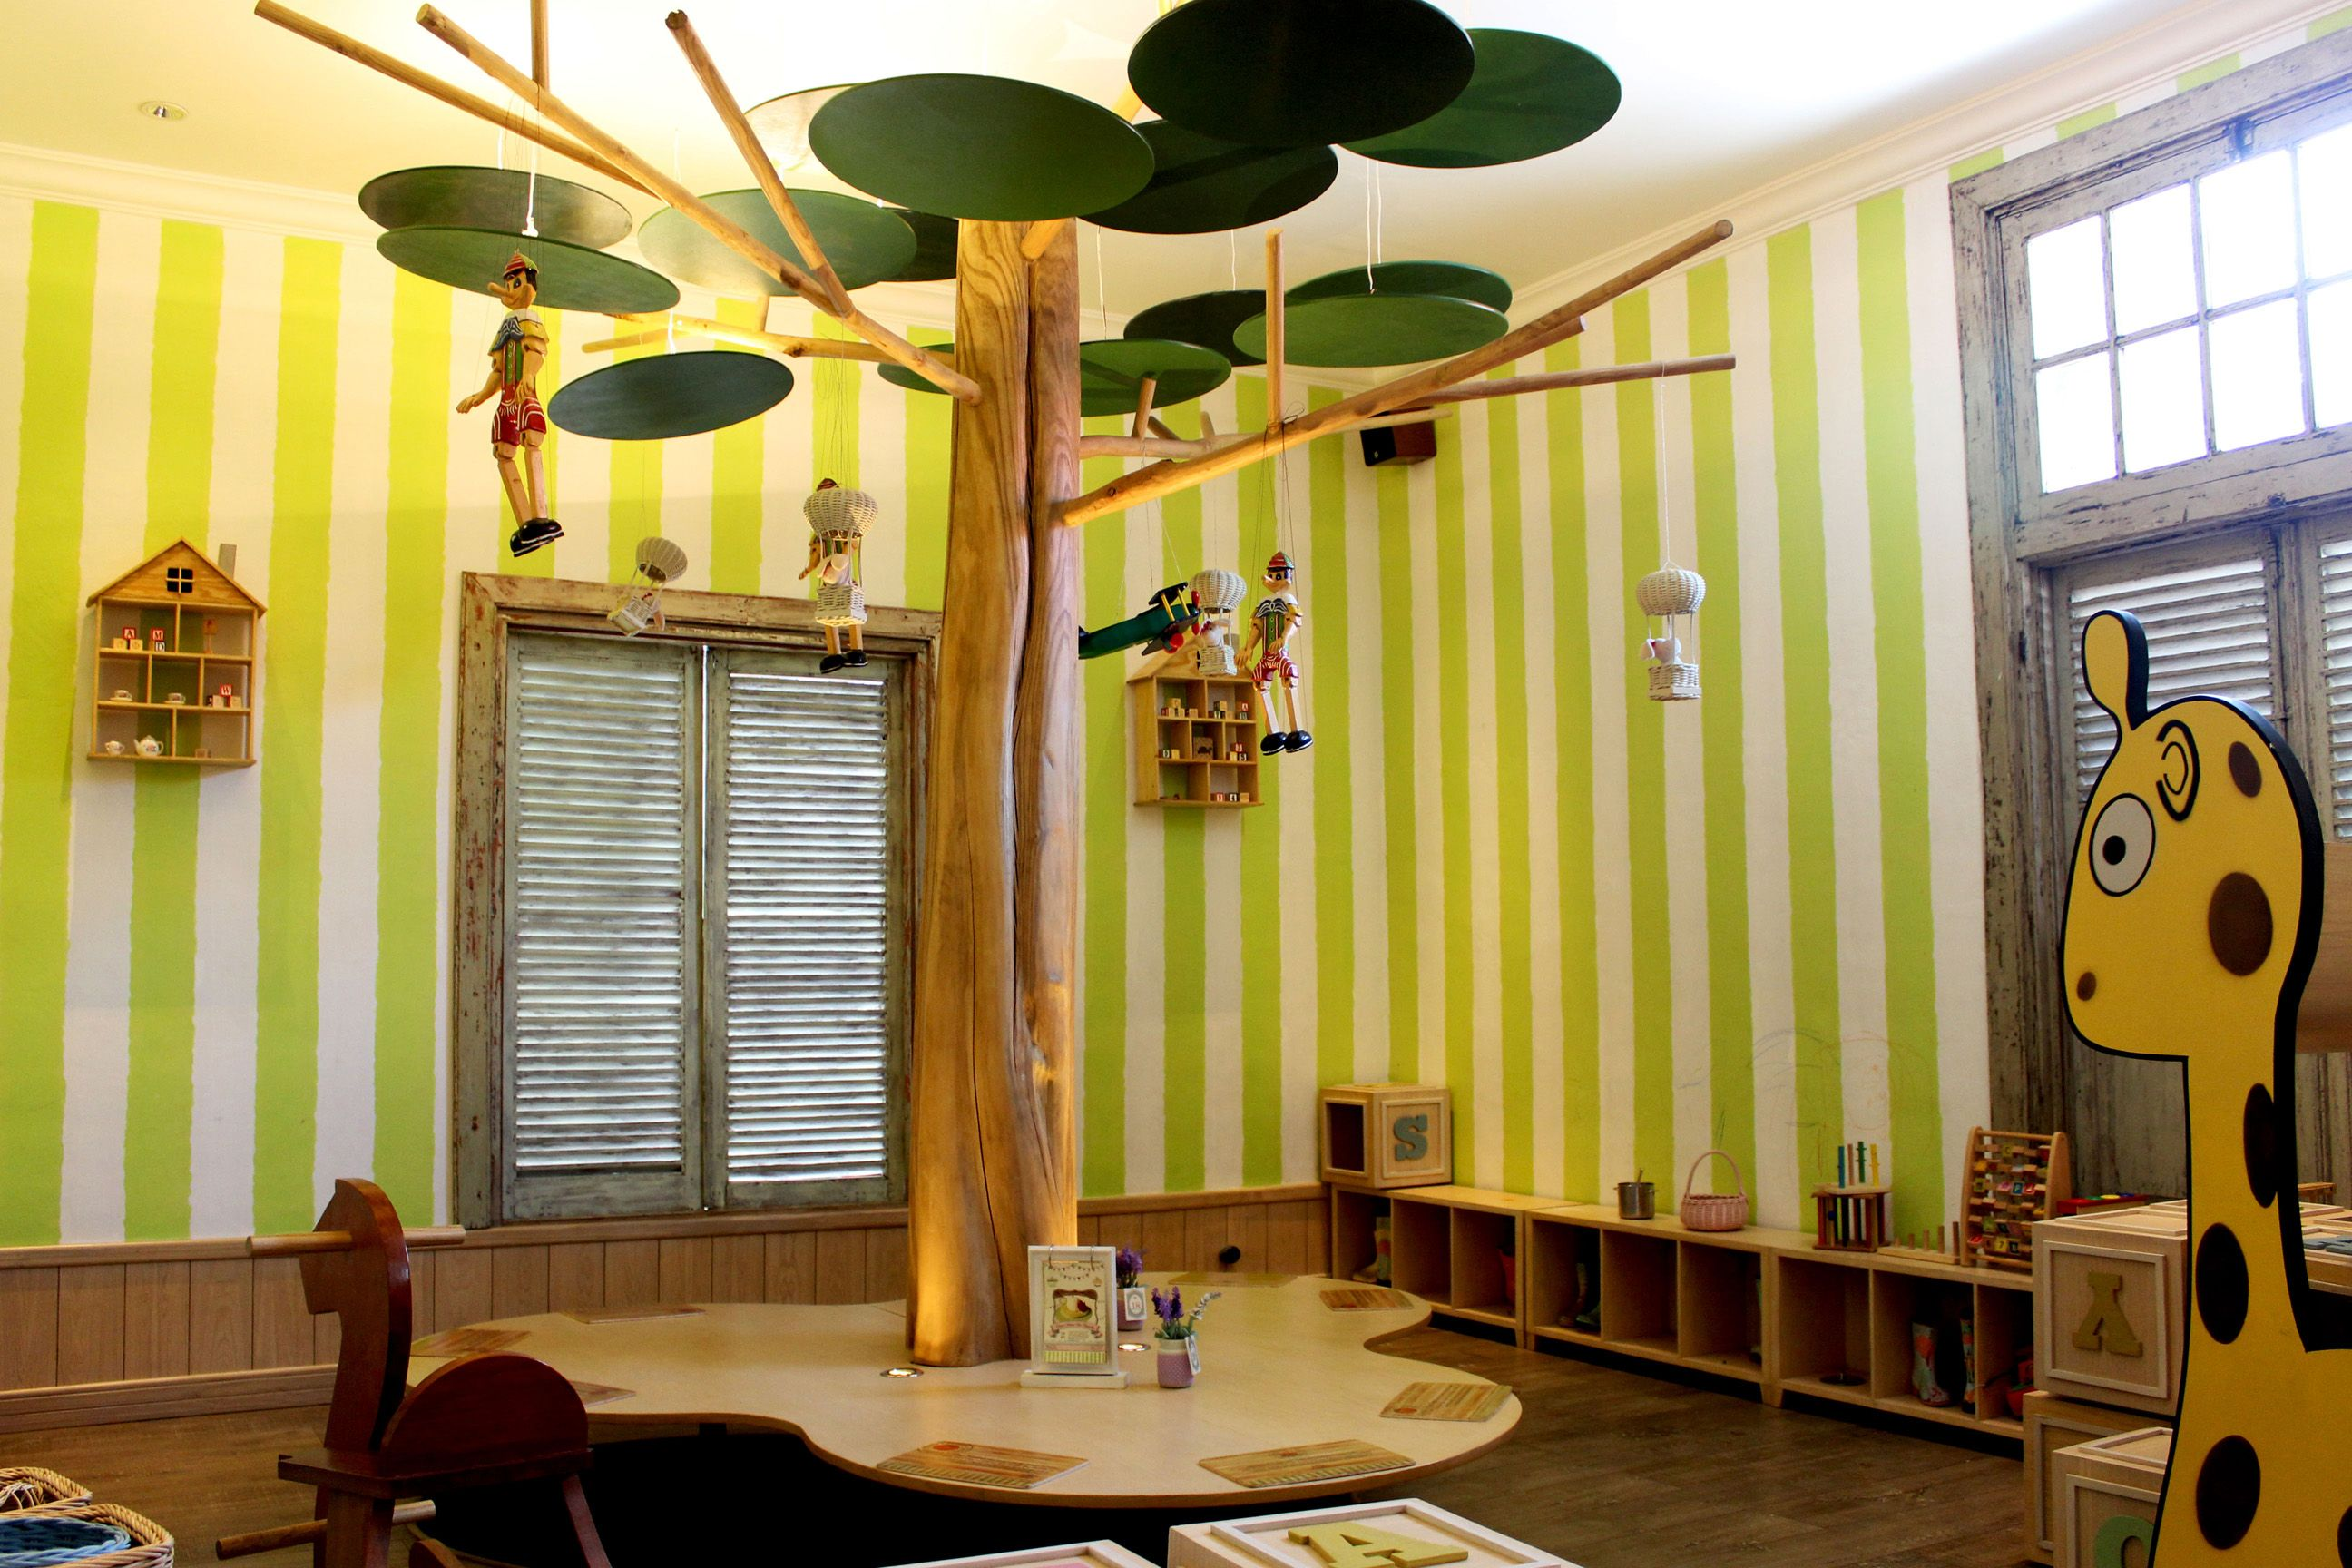 Nannys Pavillon  Playroom Kota Kasablanka, Ug Floor #Nannyspavillon #